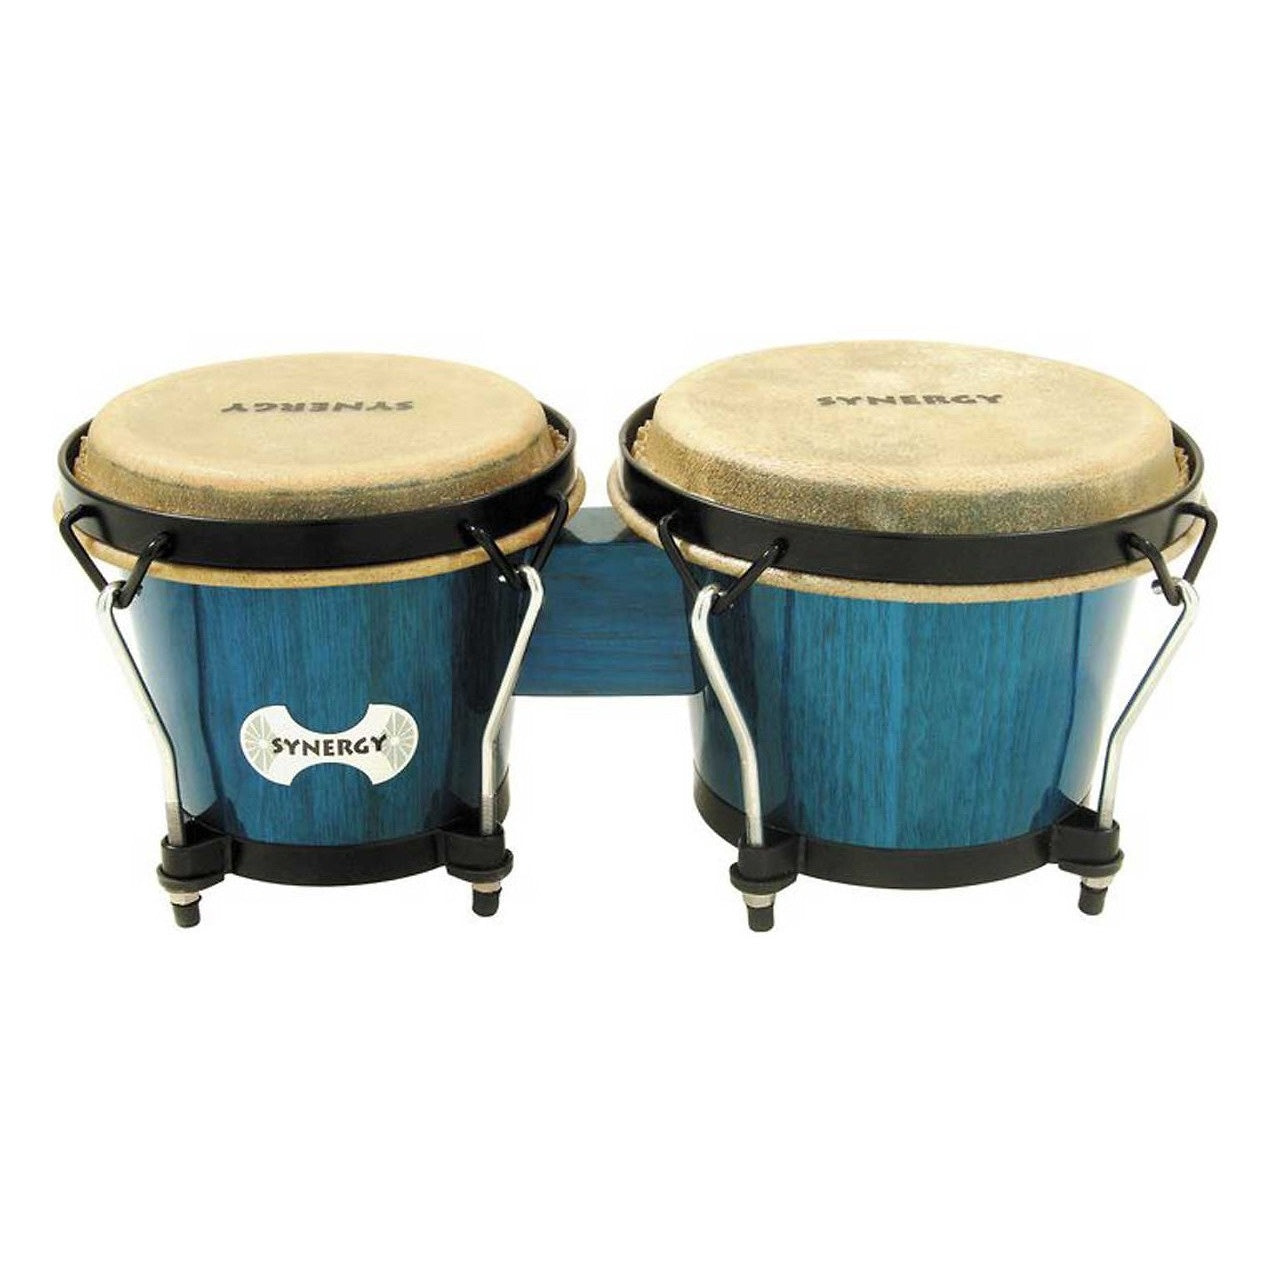 Toca Synergy Bongo Set, Bahama Blue, 6 and 6 3/4 Inch